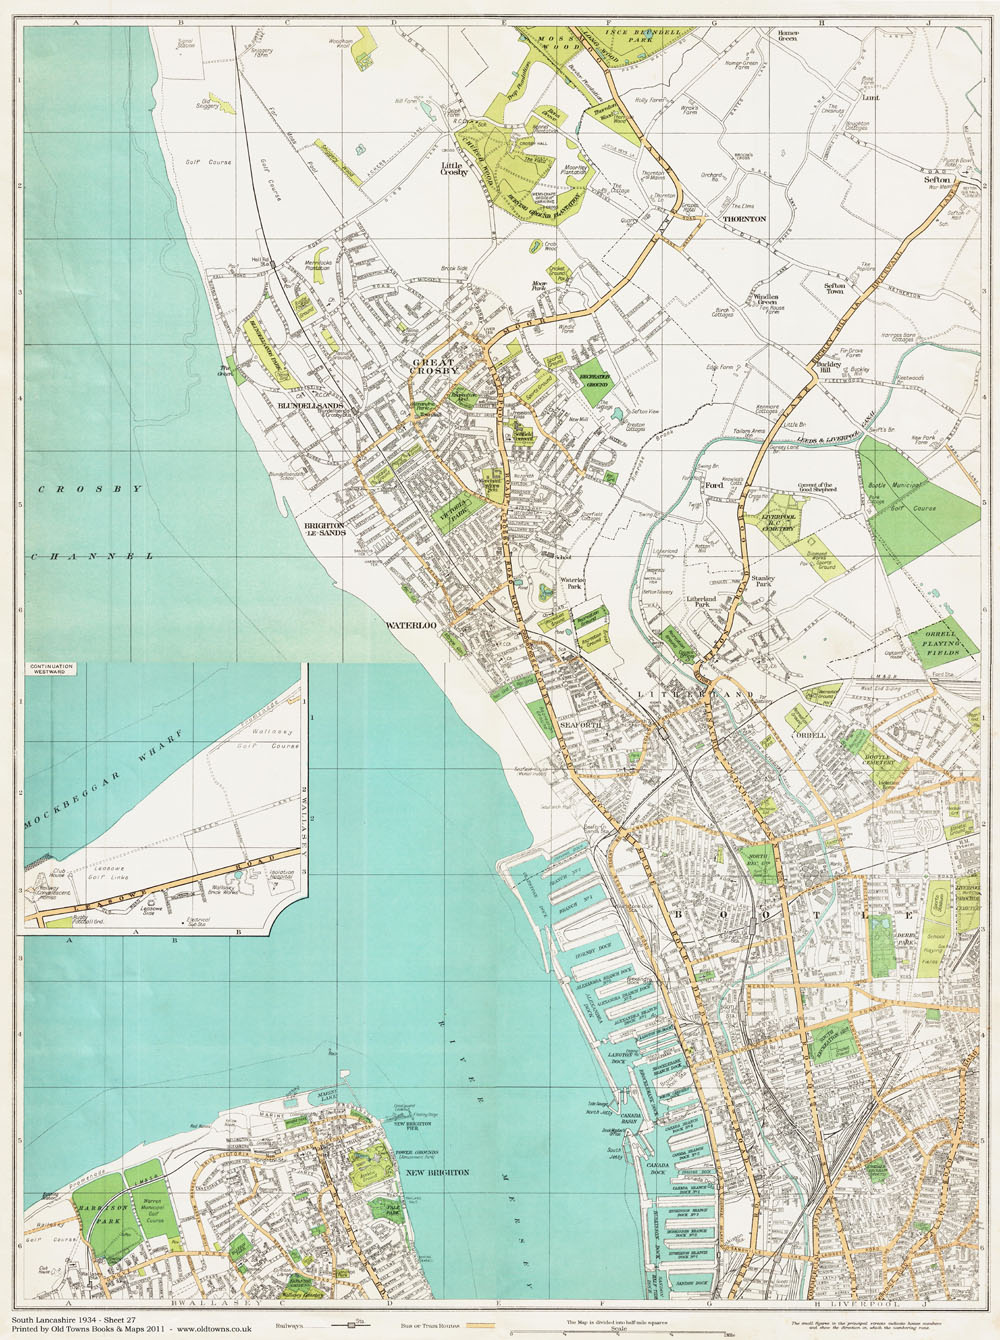 An old map of the Great Crosby and Bootle area Lancashire in 1934